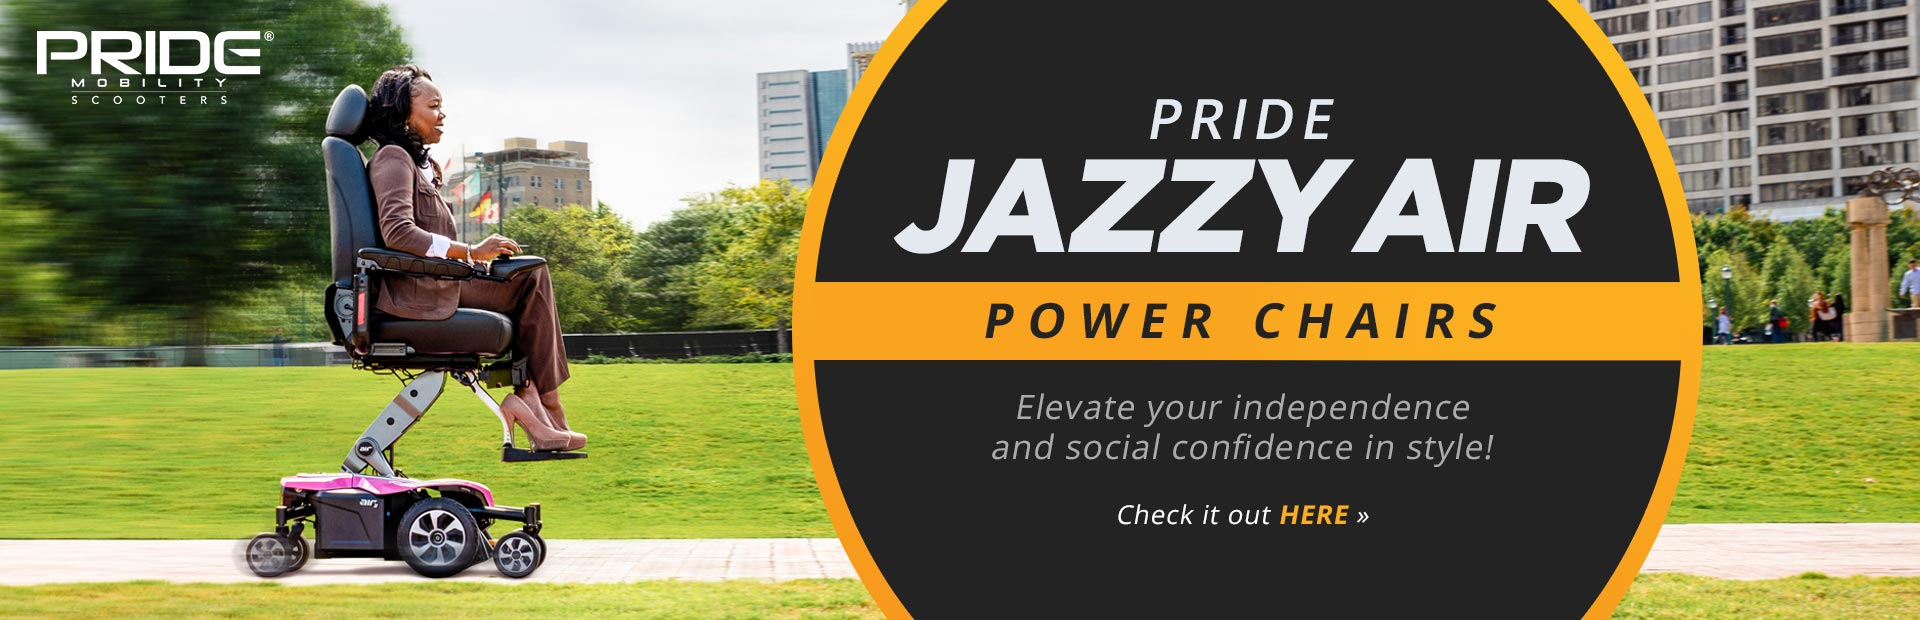 Pride Jazzy Air Power Chairs: Elevate your independence and social confidence in style! Click here t